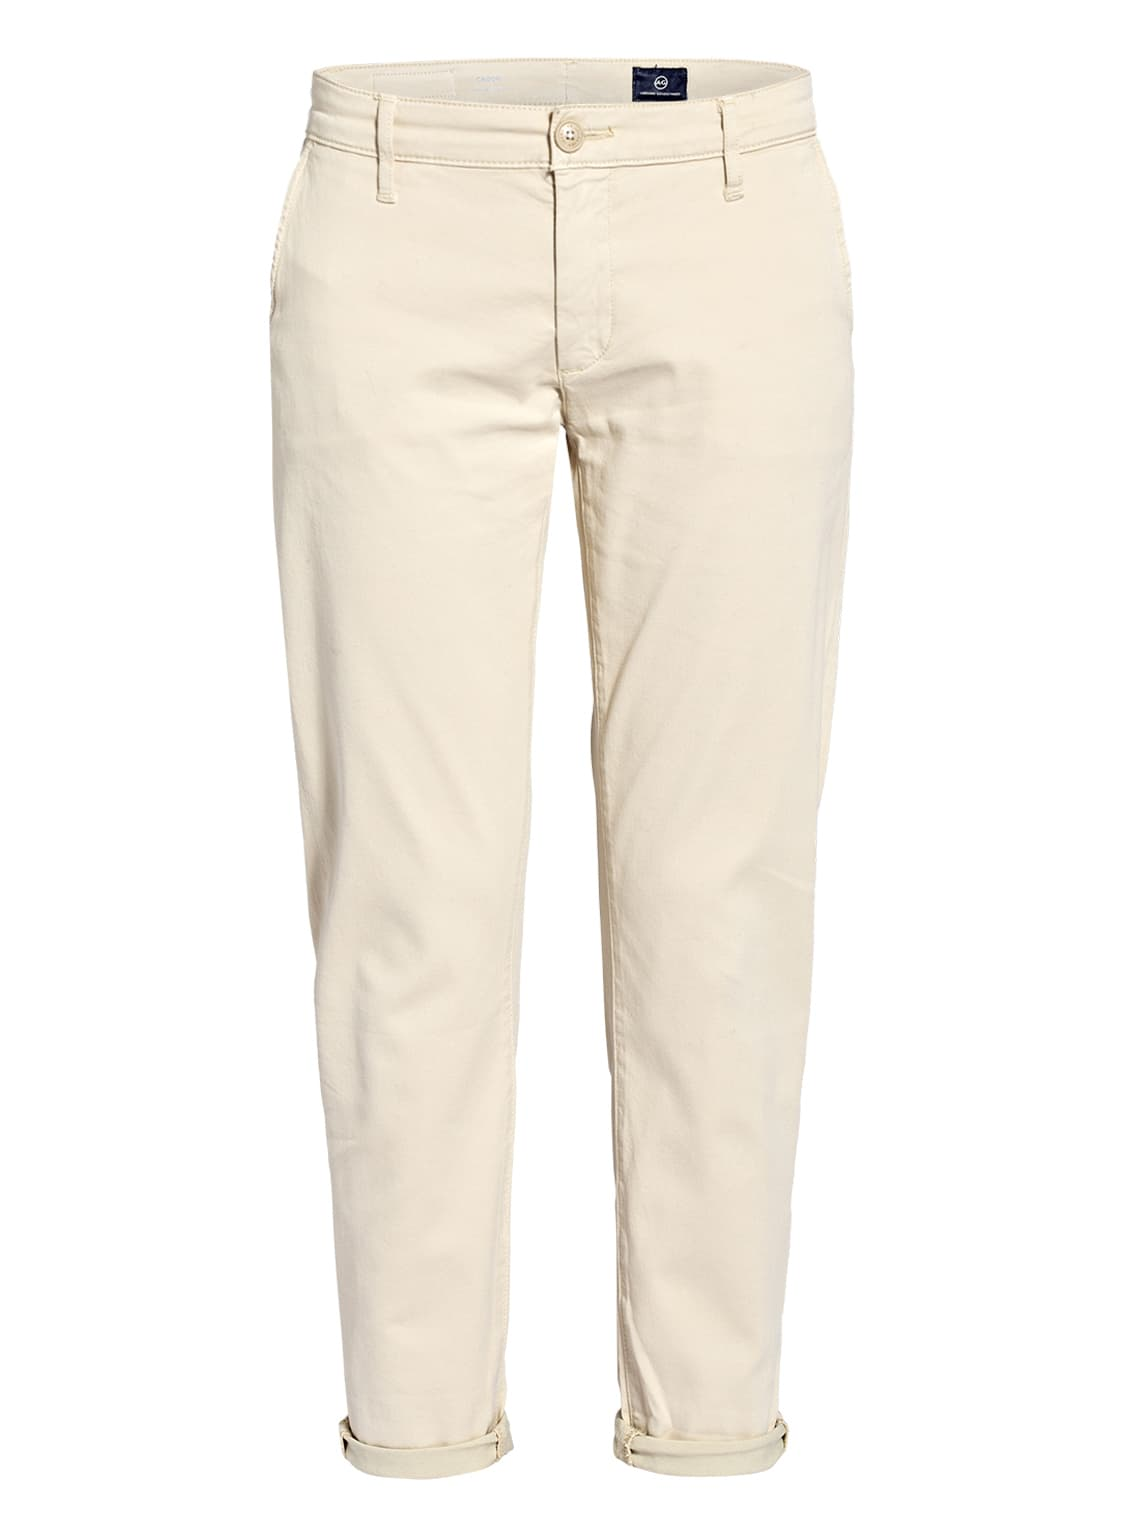 Image of Ag Jeans 7/8-Chino Caden beige